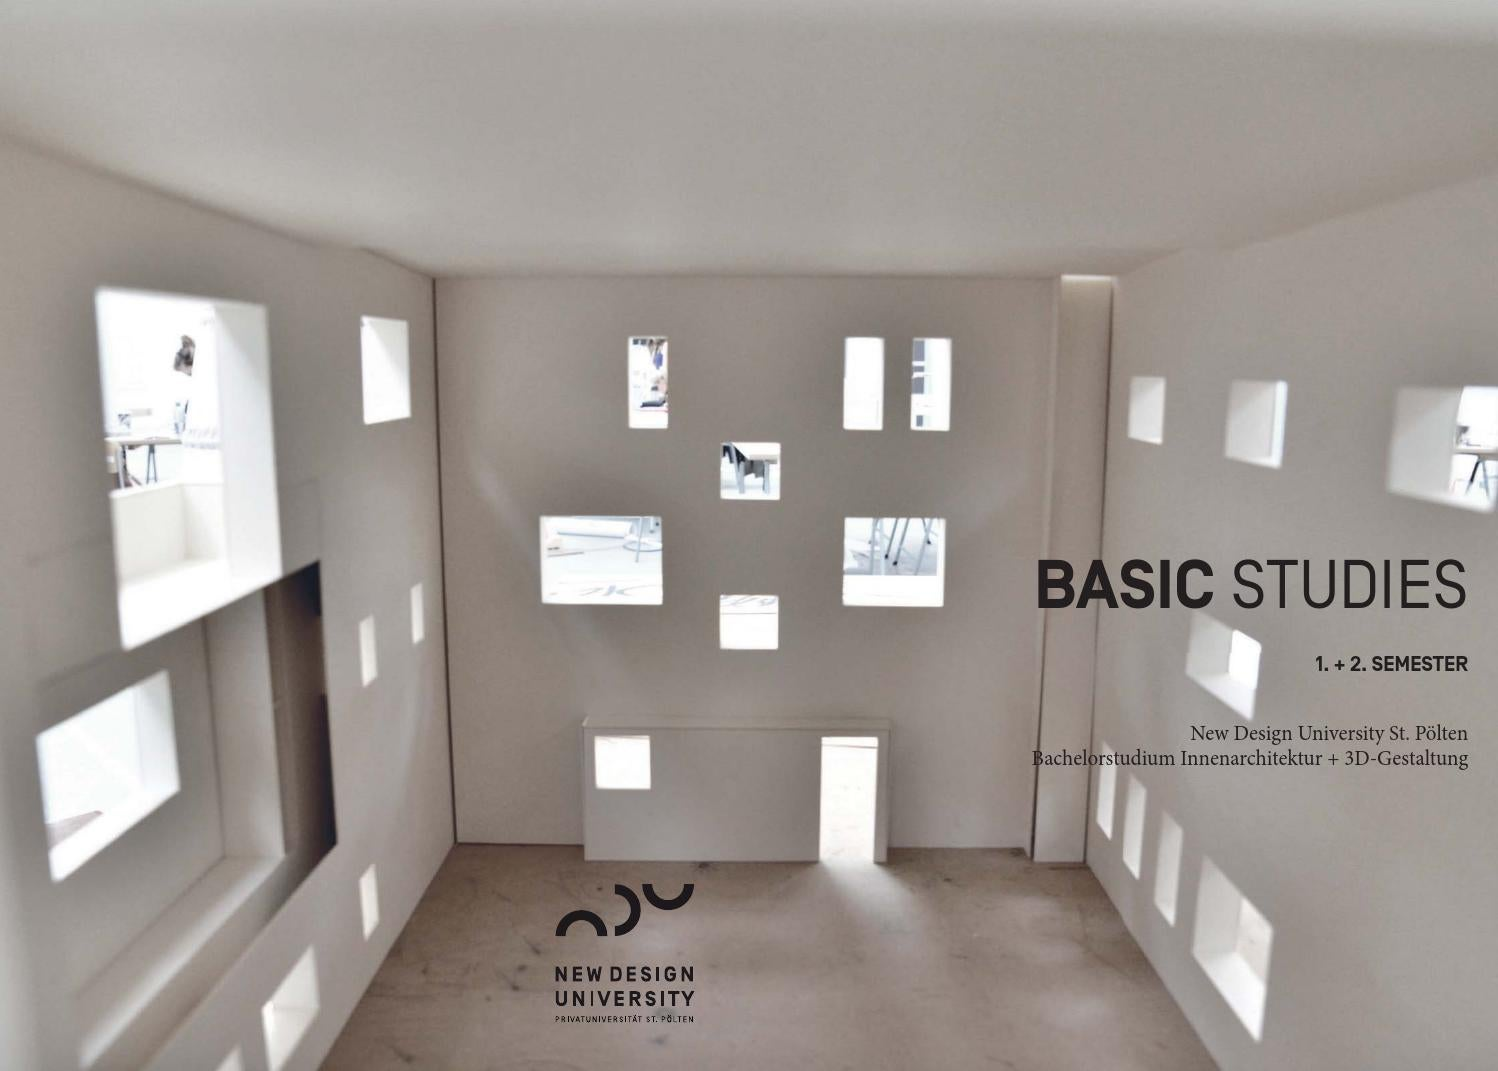 Projektmagazin basic studies by new design university issuu - Innenarchitektur programm ...